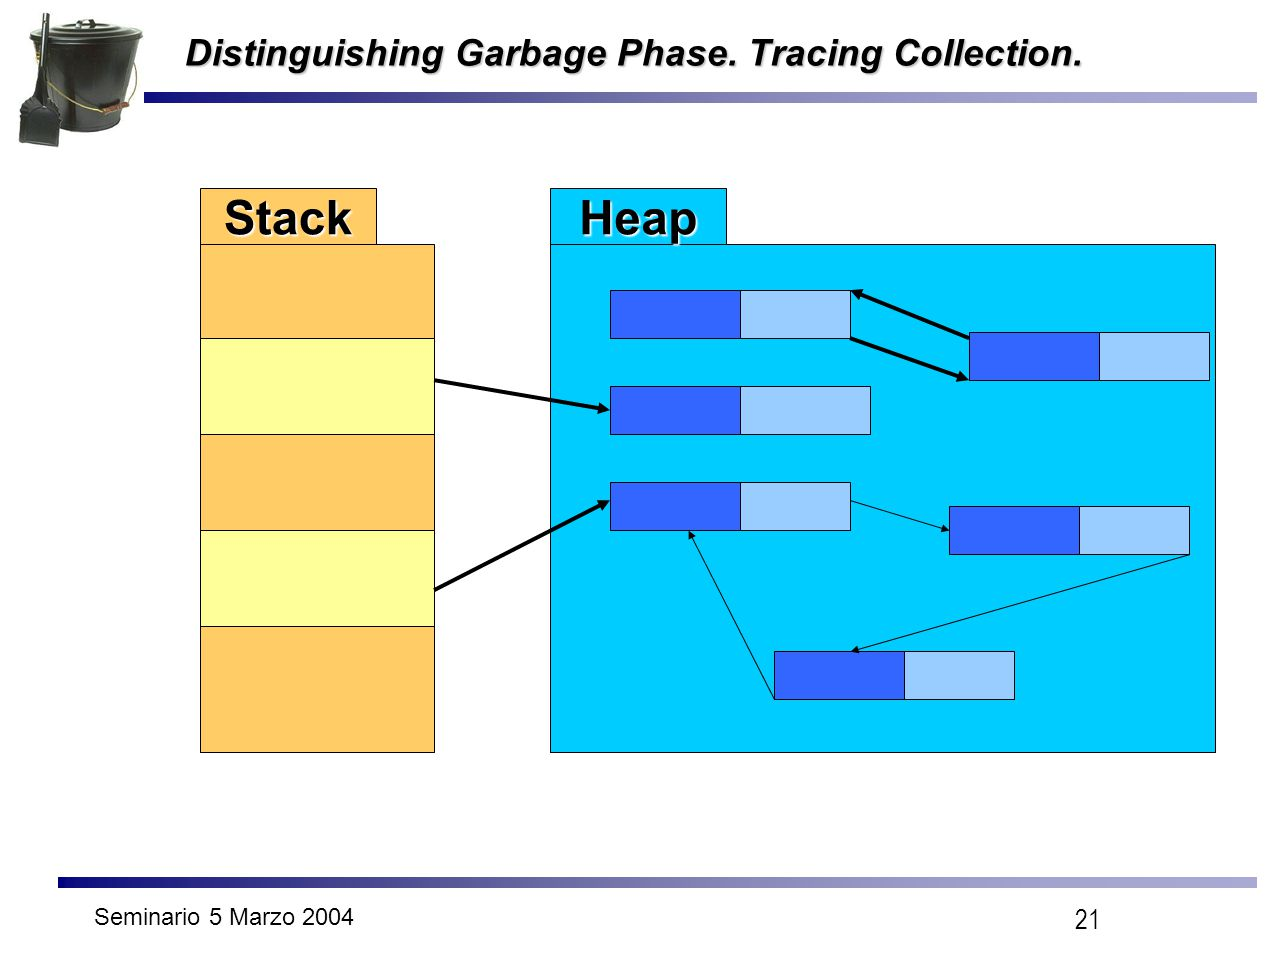 Seminario 5 Marzo 2004 21 Distinguishing Garbage Phase. Tracing Collection. StackHeap